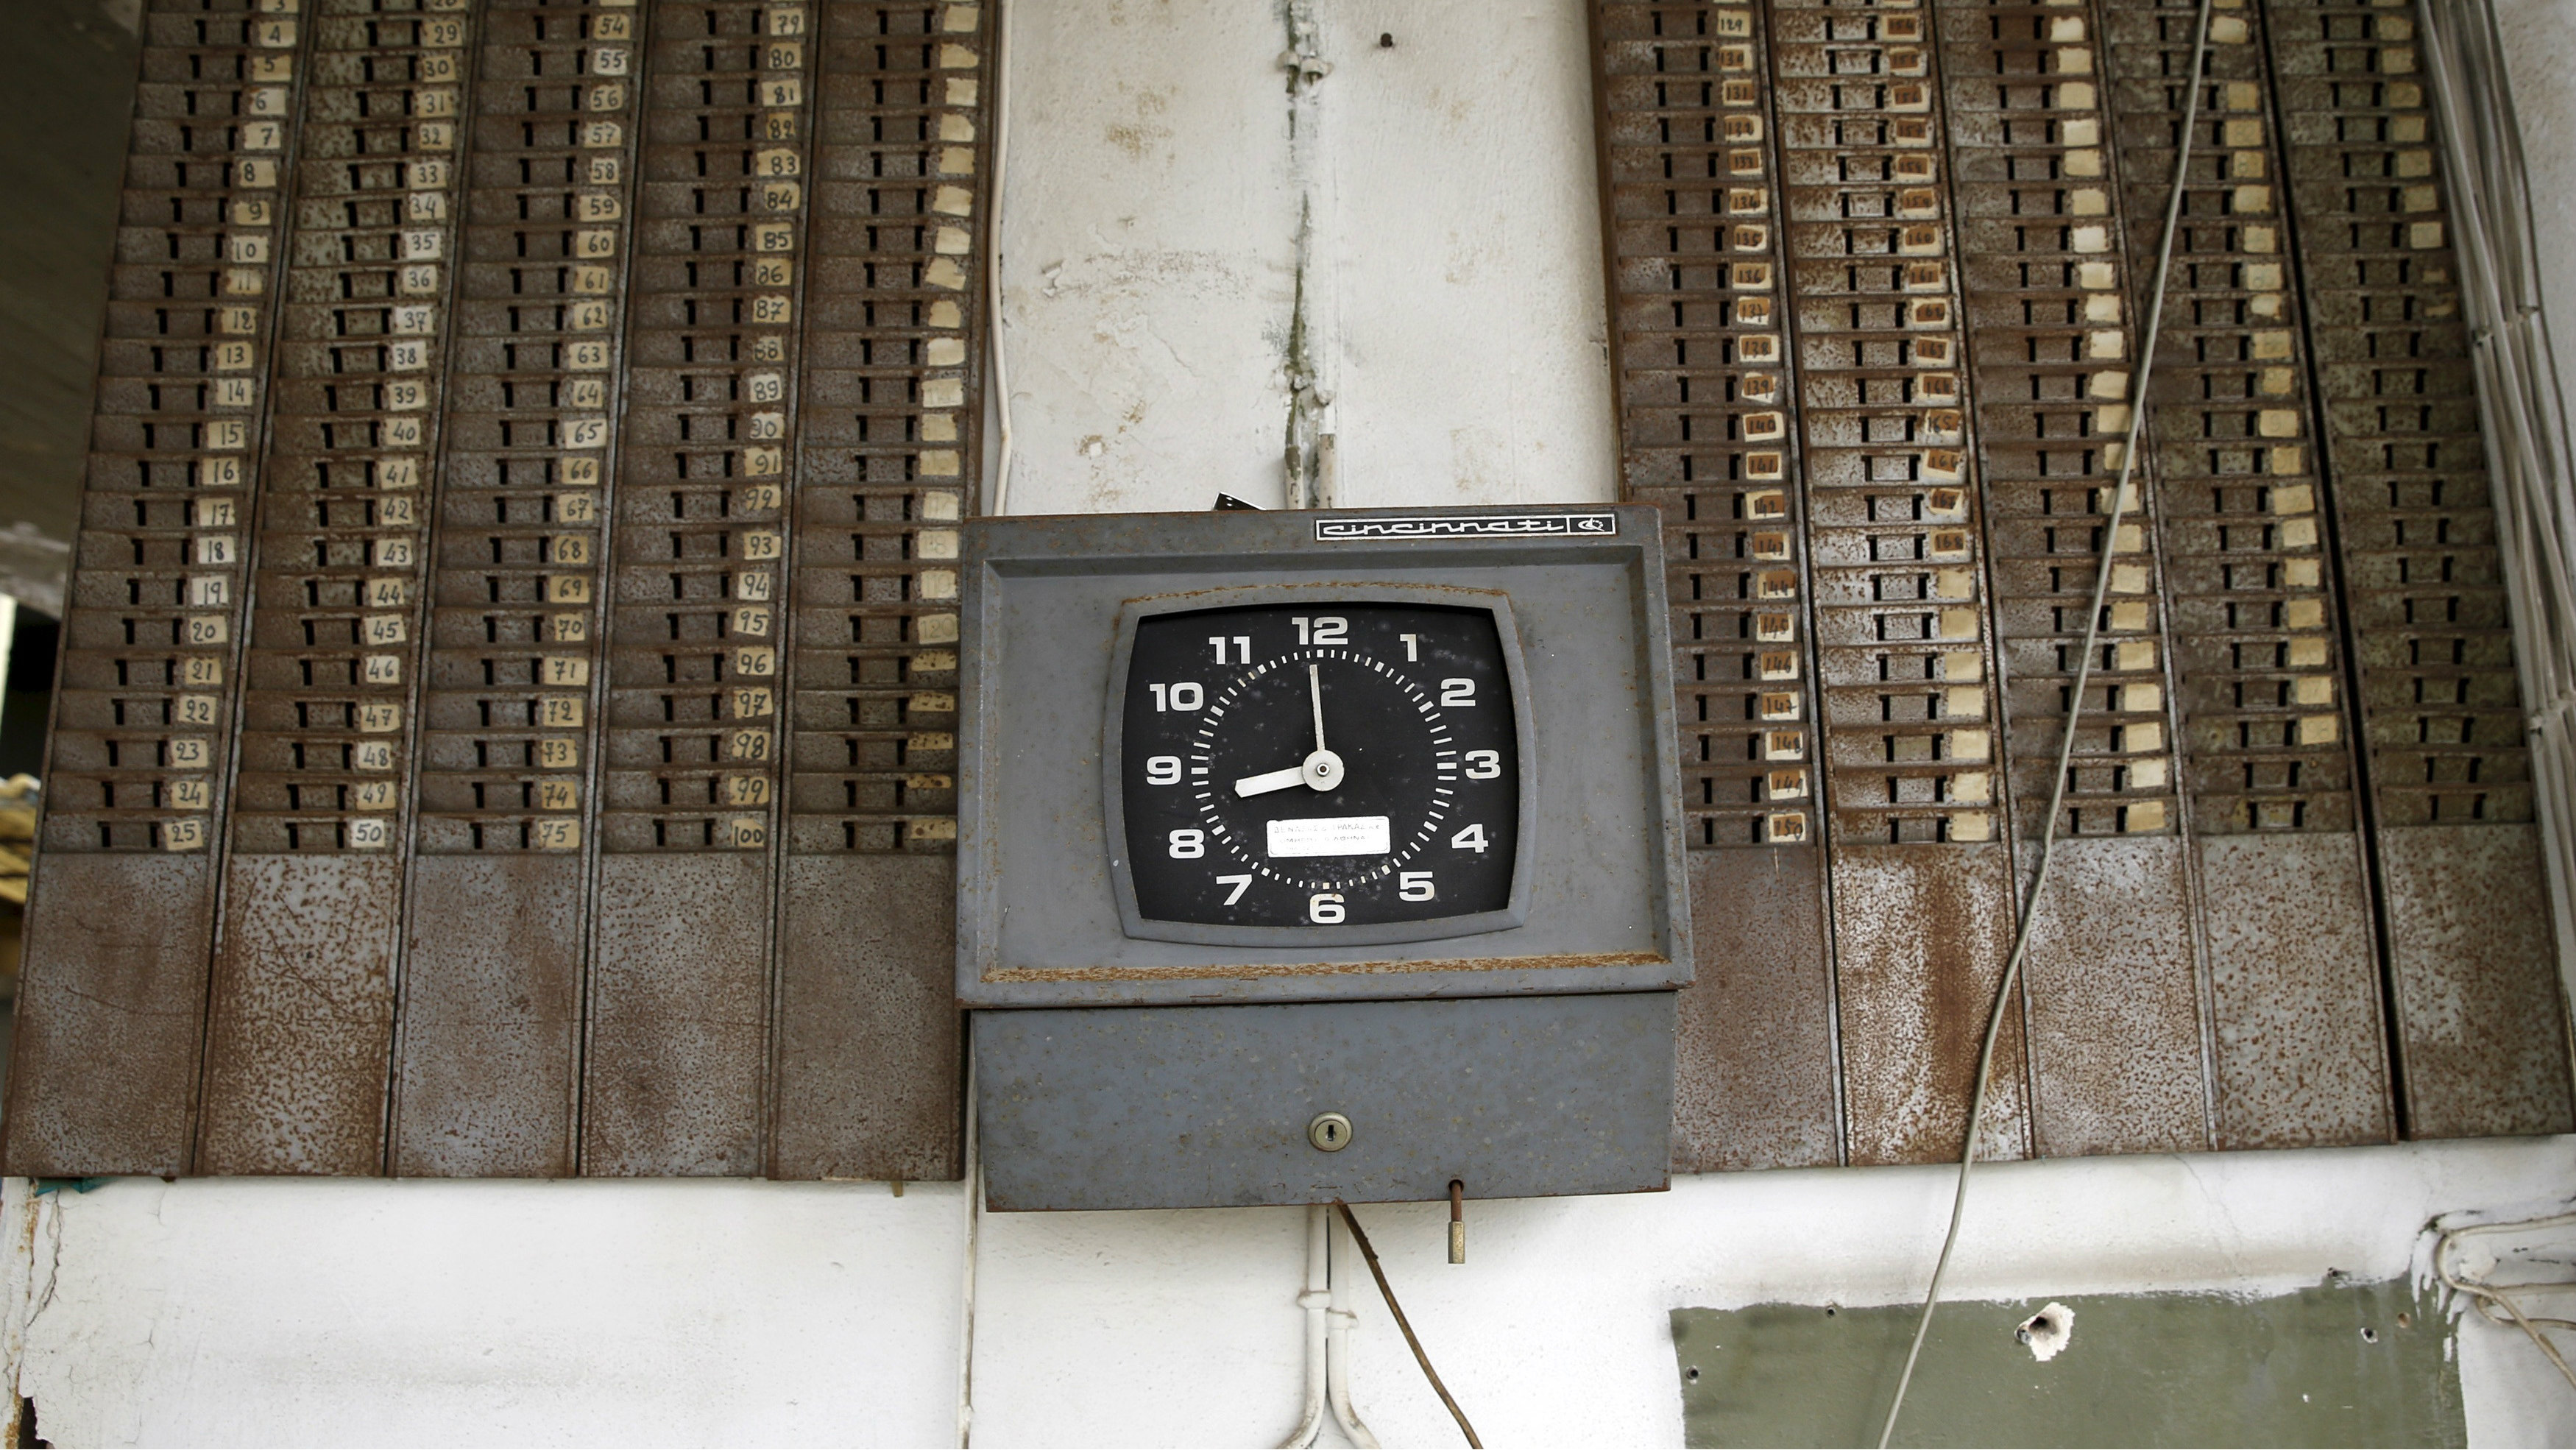 A punch clock is seen at the entrance of a deserted cooking oil factory that closed in 1996 in the town of Elefsina in Sterea Hellas region, Greece April 28, 2015. As Athens faces growing pressure to reach agreement with lenders to avoid financial chaos, an angry Greek public feels the pain of cuts following a six-year recession, with unemployment more than double the euro zone average. A 2,500 km trip from Athens to northeastern Greece and back via the Peloponnese region in the south shows the remnants of a once-flourishing Greek industry, which has suffered a 30 percent drop in production from its peak. Abandoned factories, previously making goods from timber to textiles and cooking oil, are often looted, adding to the scenes of desolation.